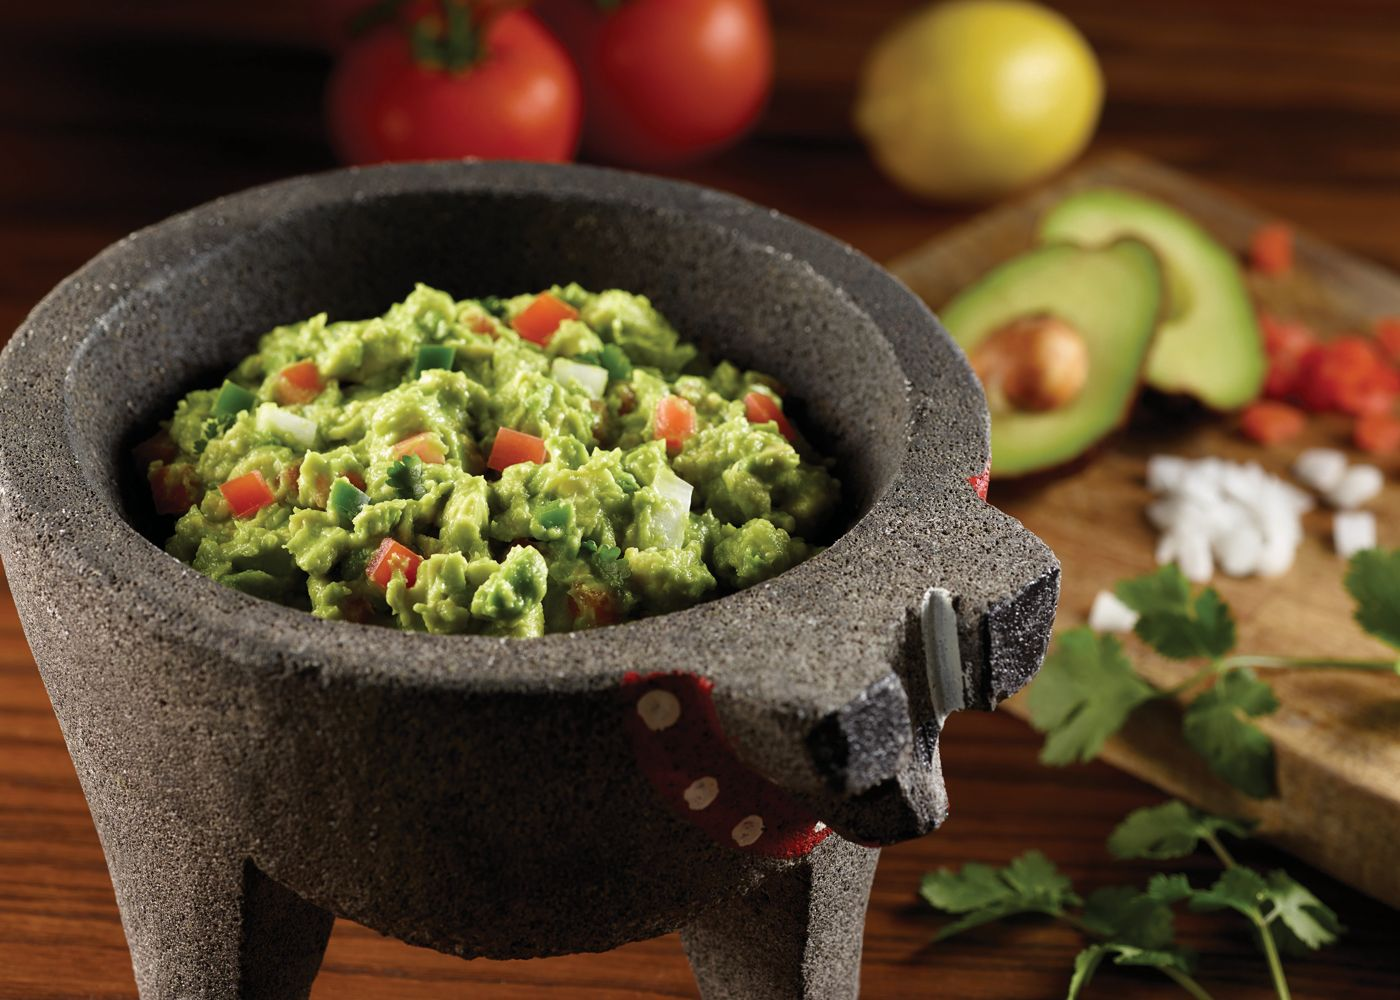 Celebrate National Guacamole Day with $5 Fresh Guacamole and $5 Margaritas from Uncle Julio's